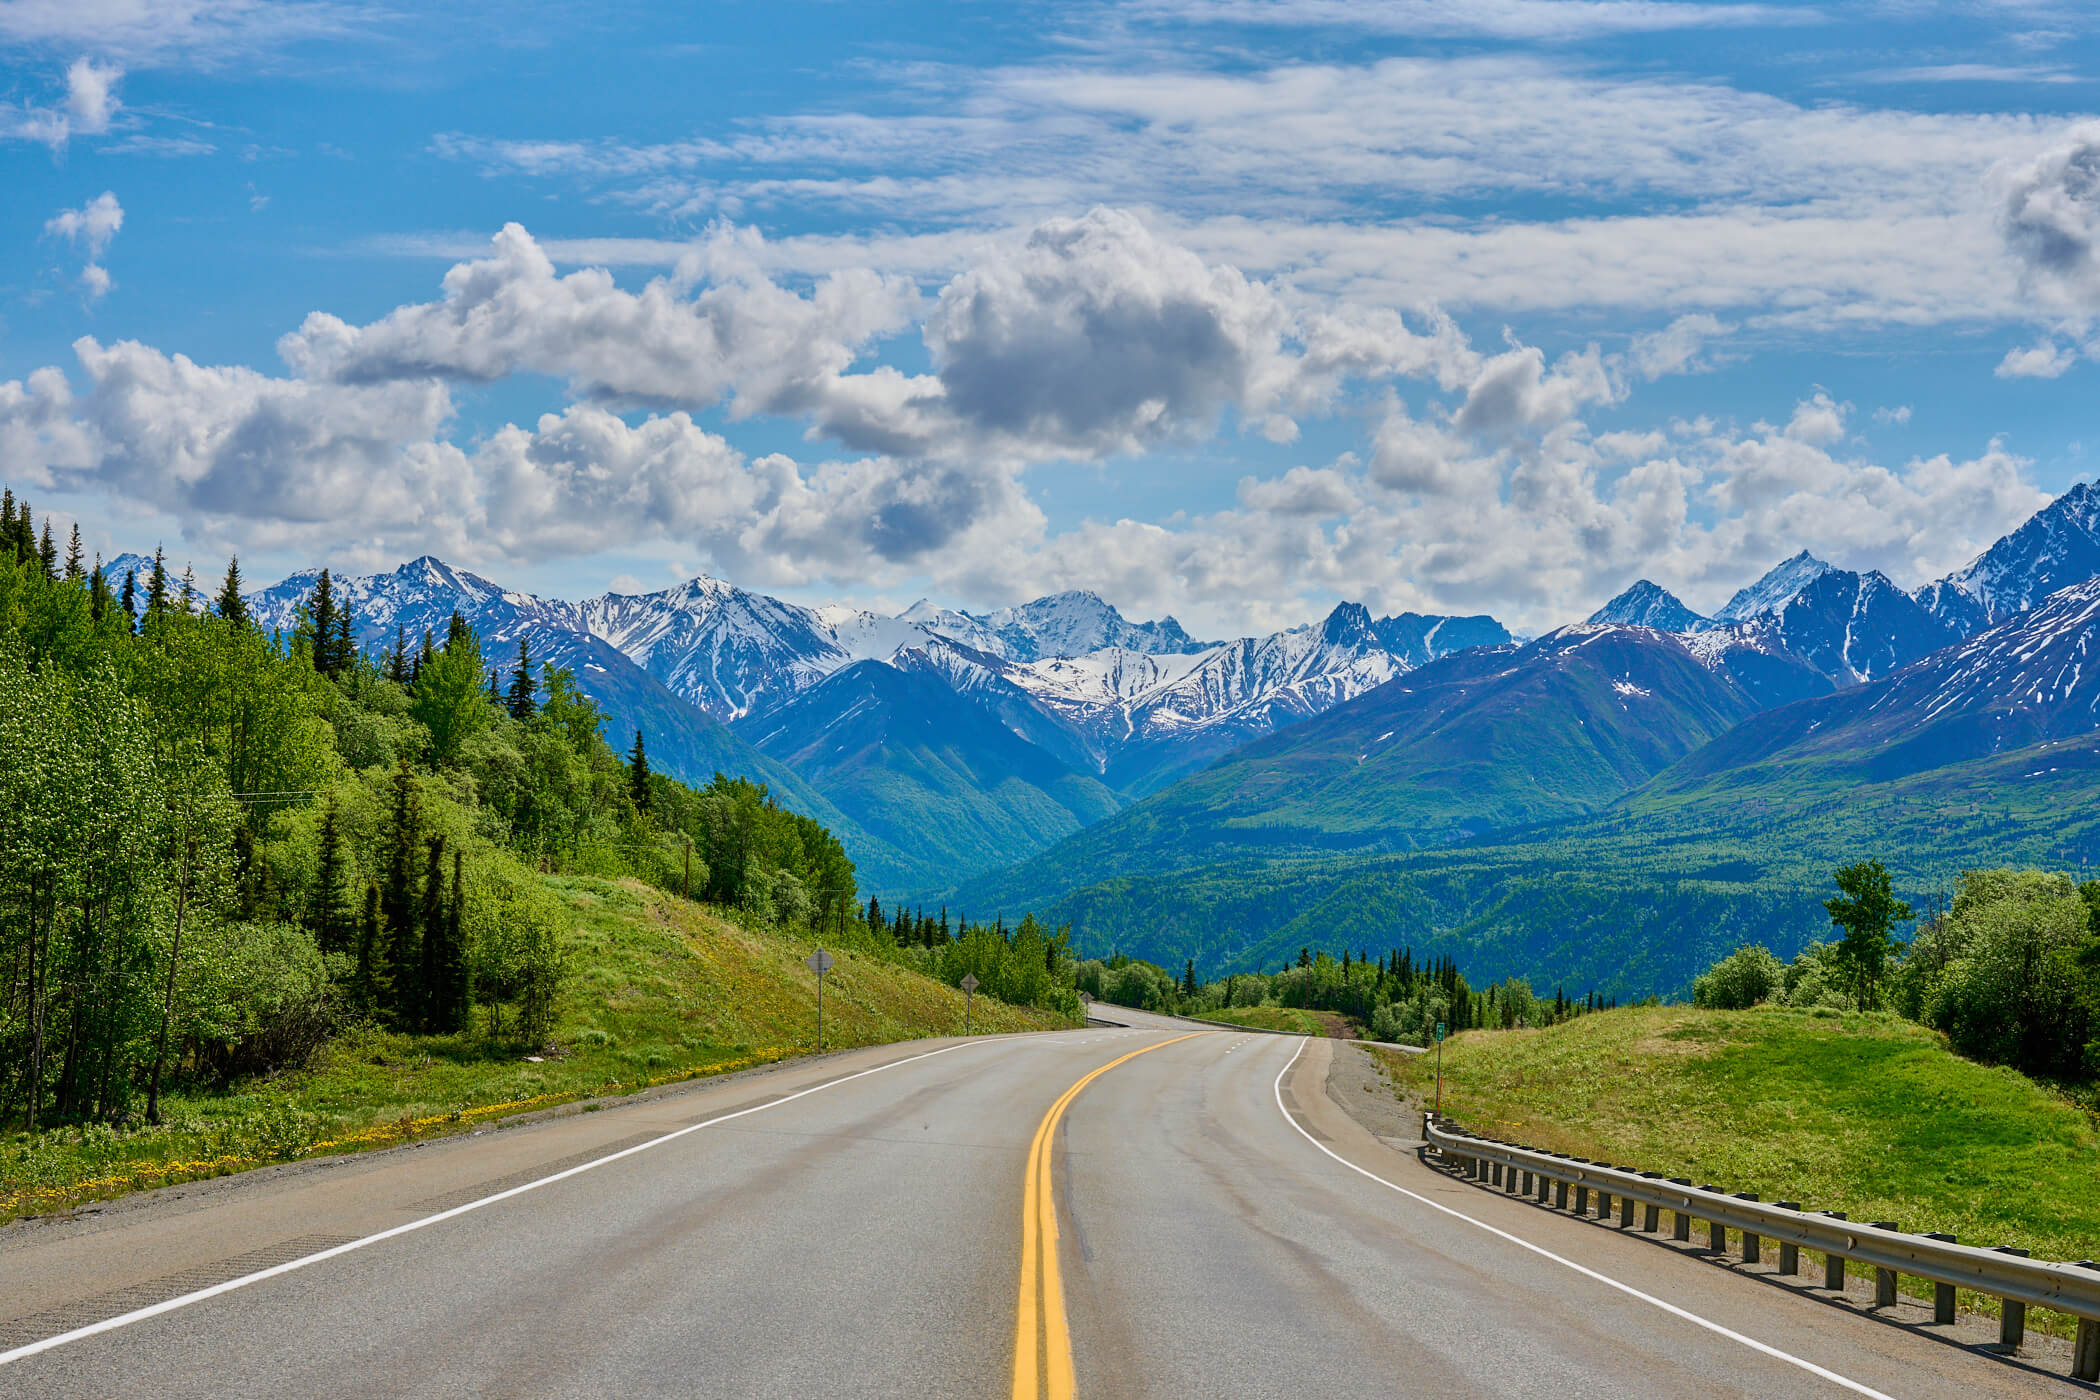 Road Trip to Valdez from Anchorage